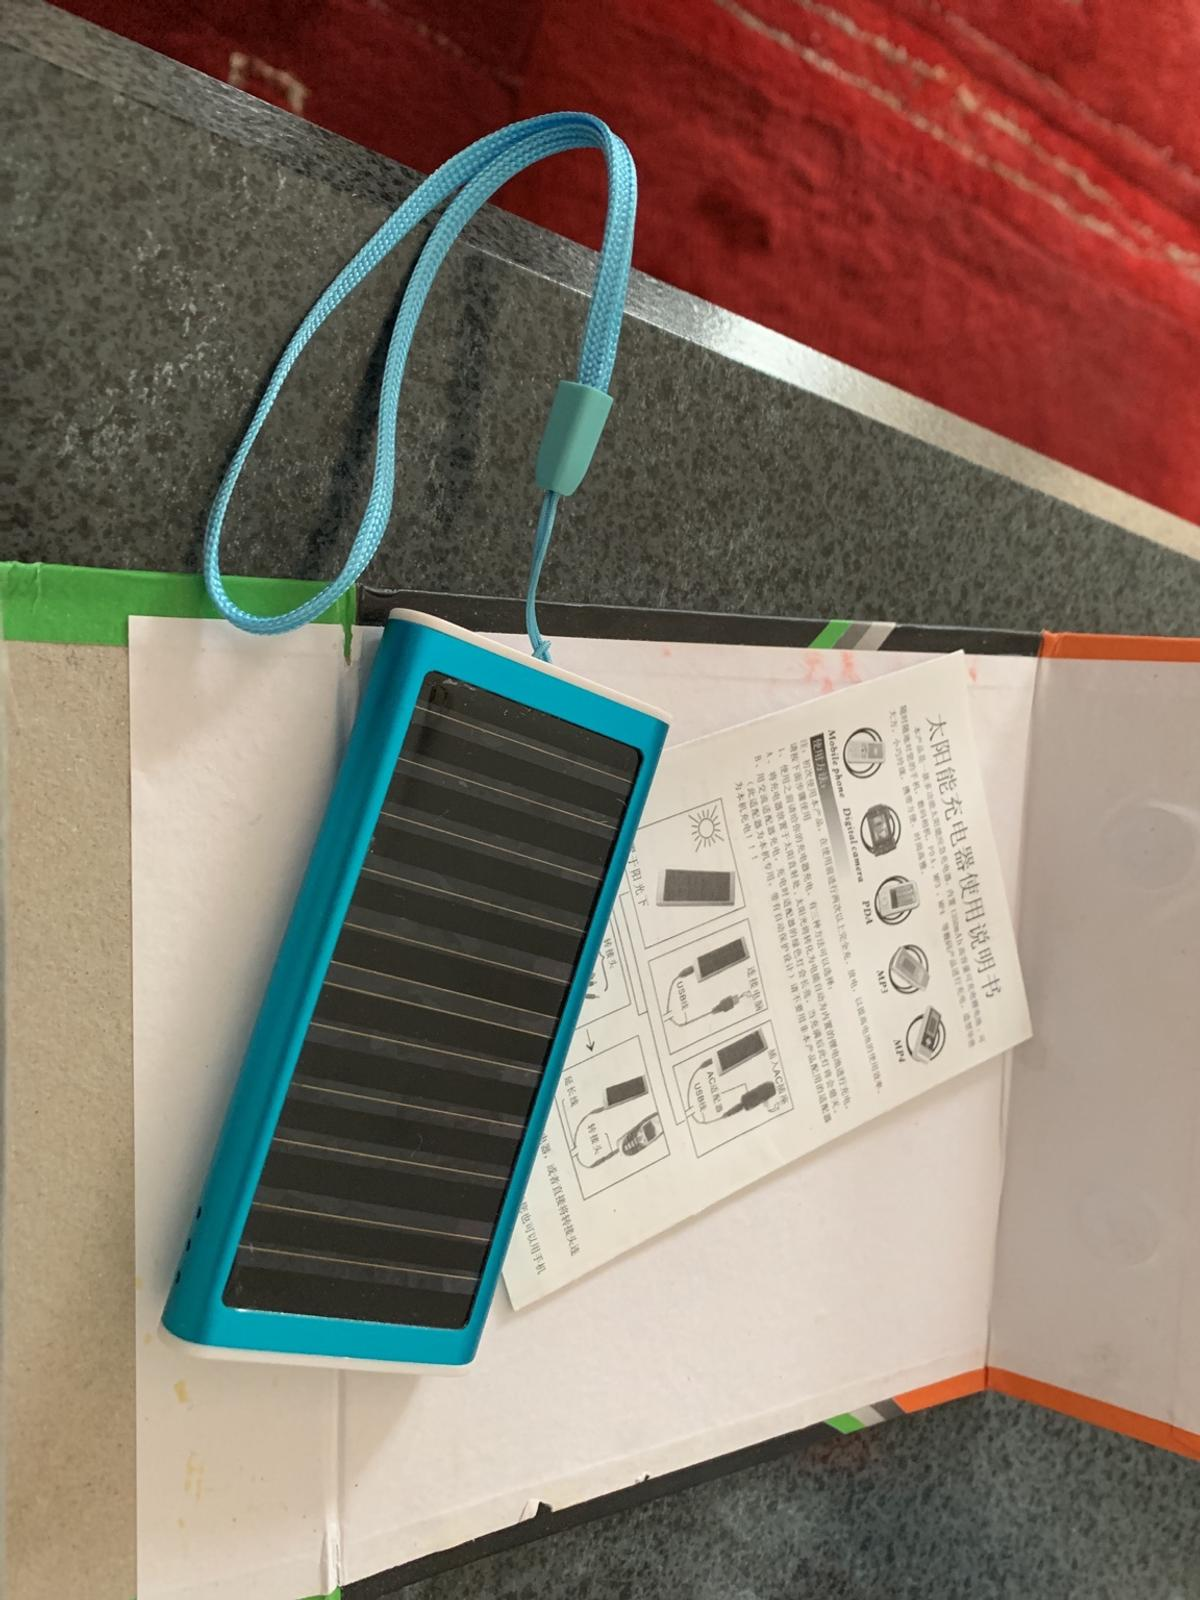 Solar Charger RoHS